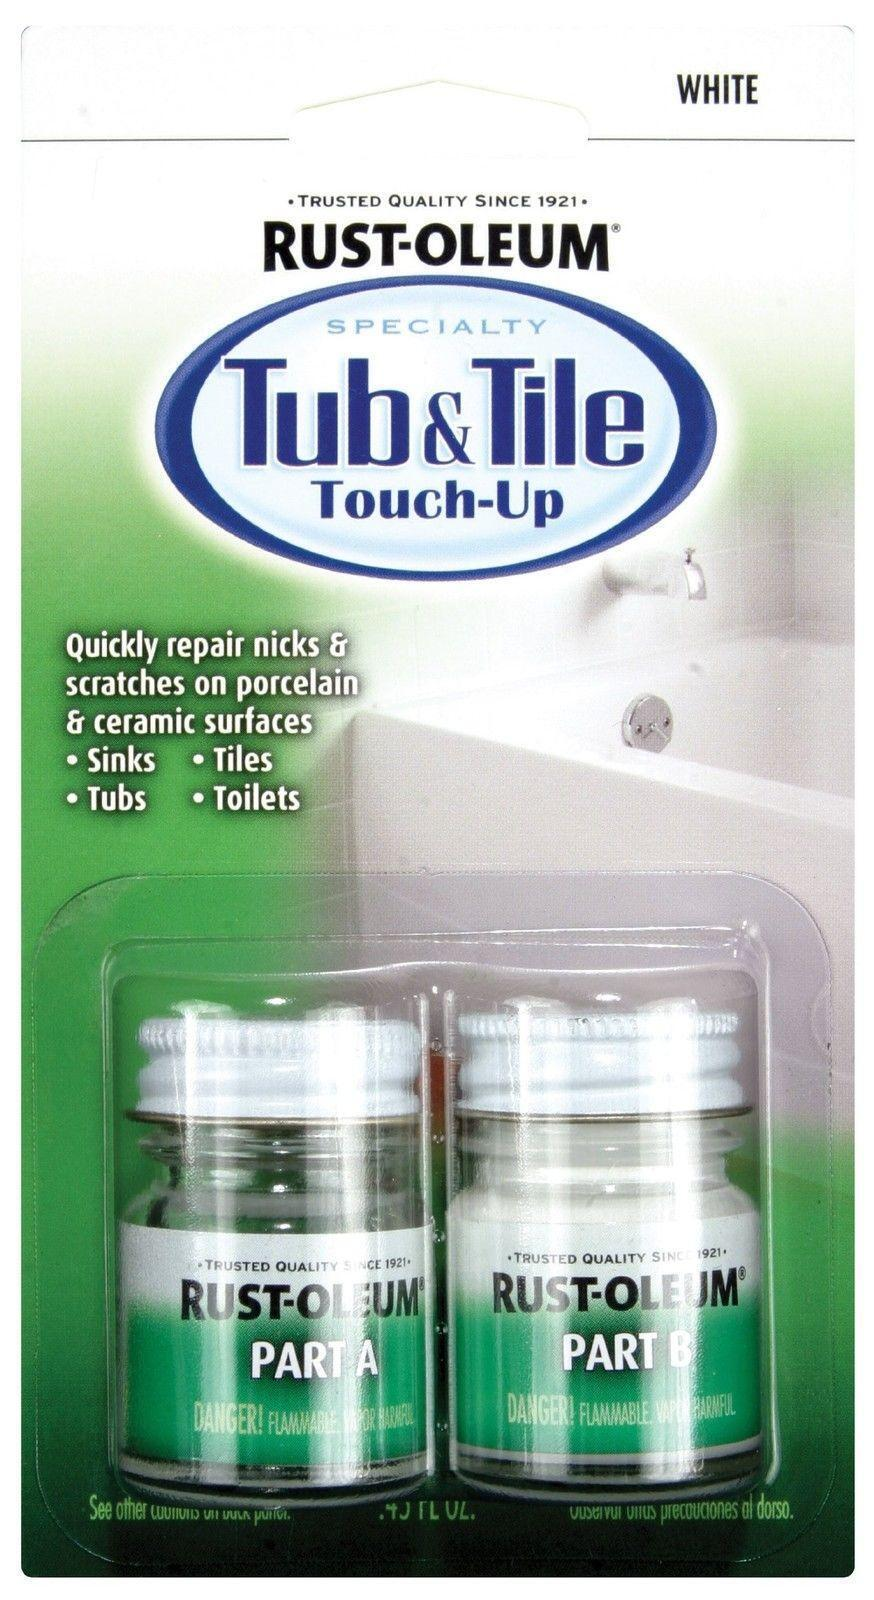 Rust-Oleum 244166 Specialty Kit Tub and Tile Touch up White | eBay